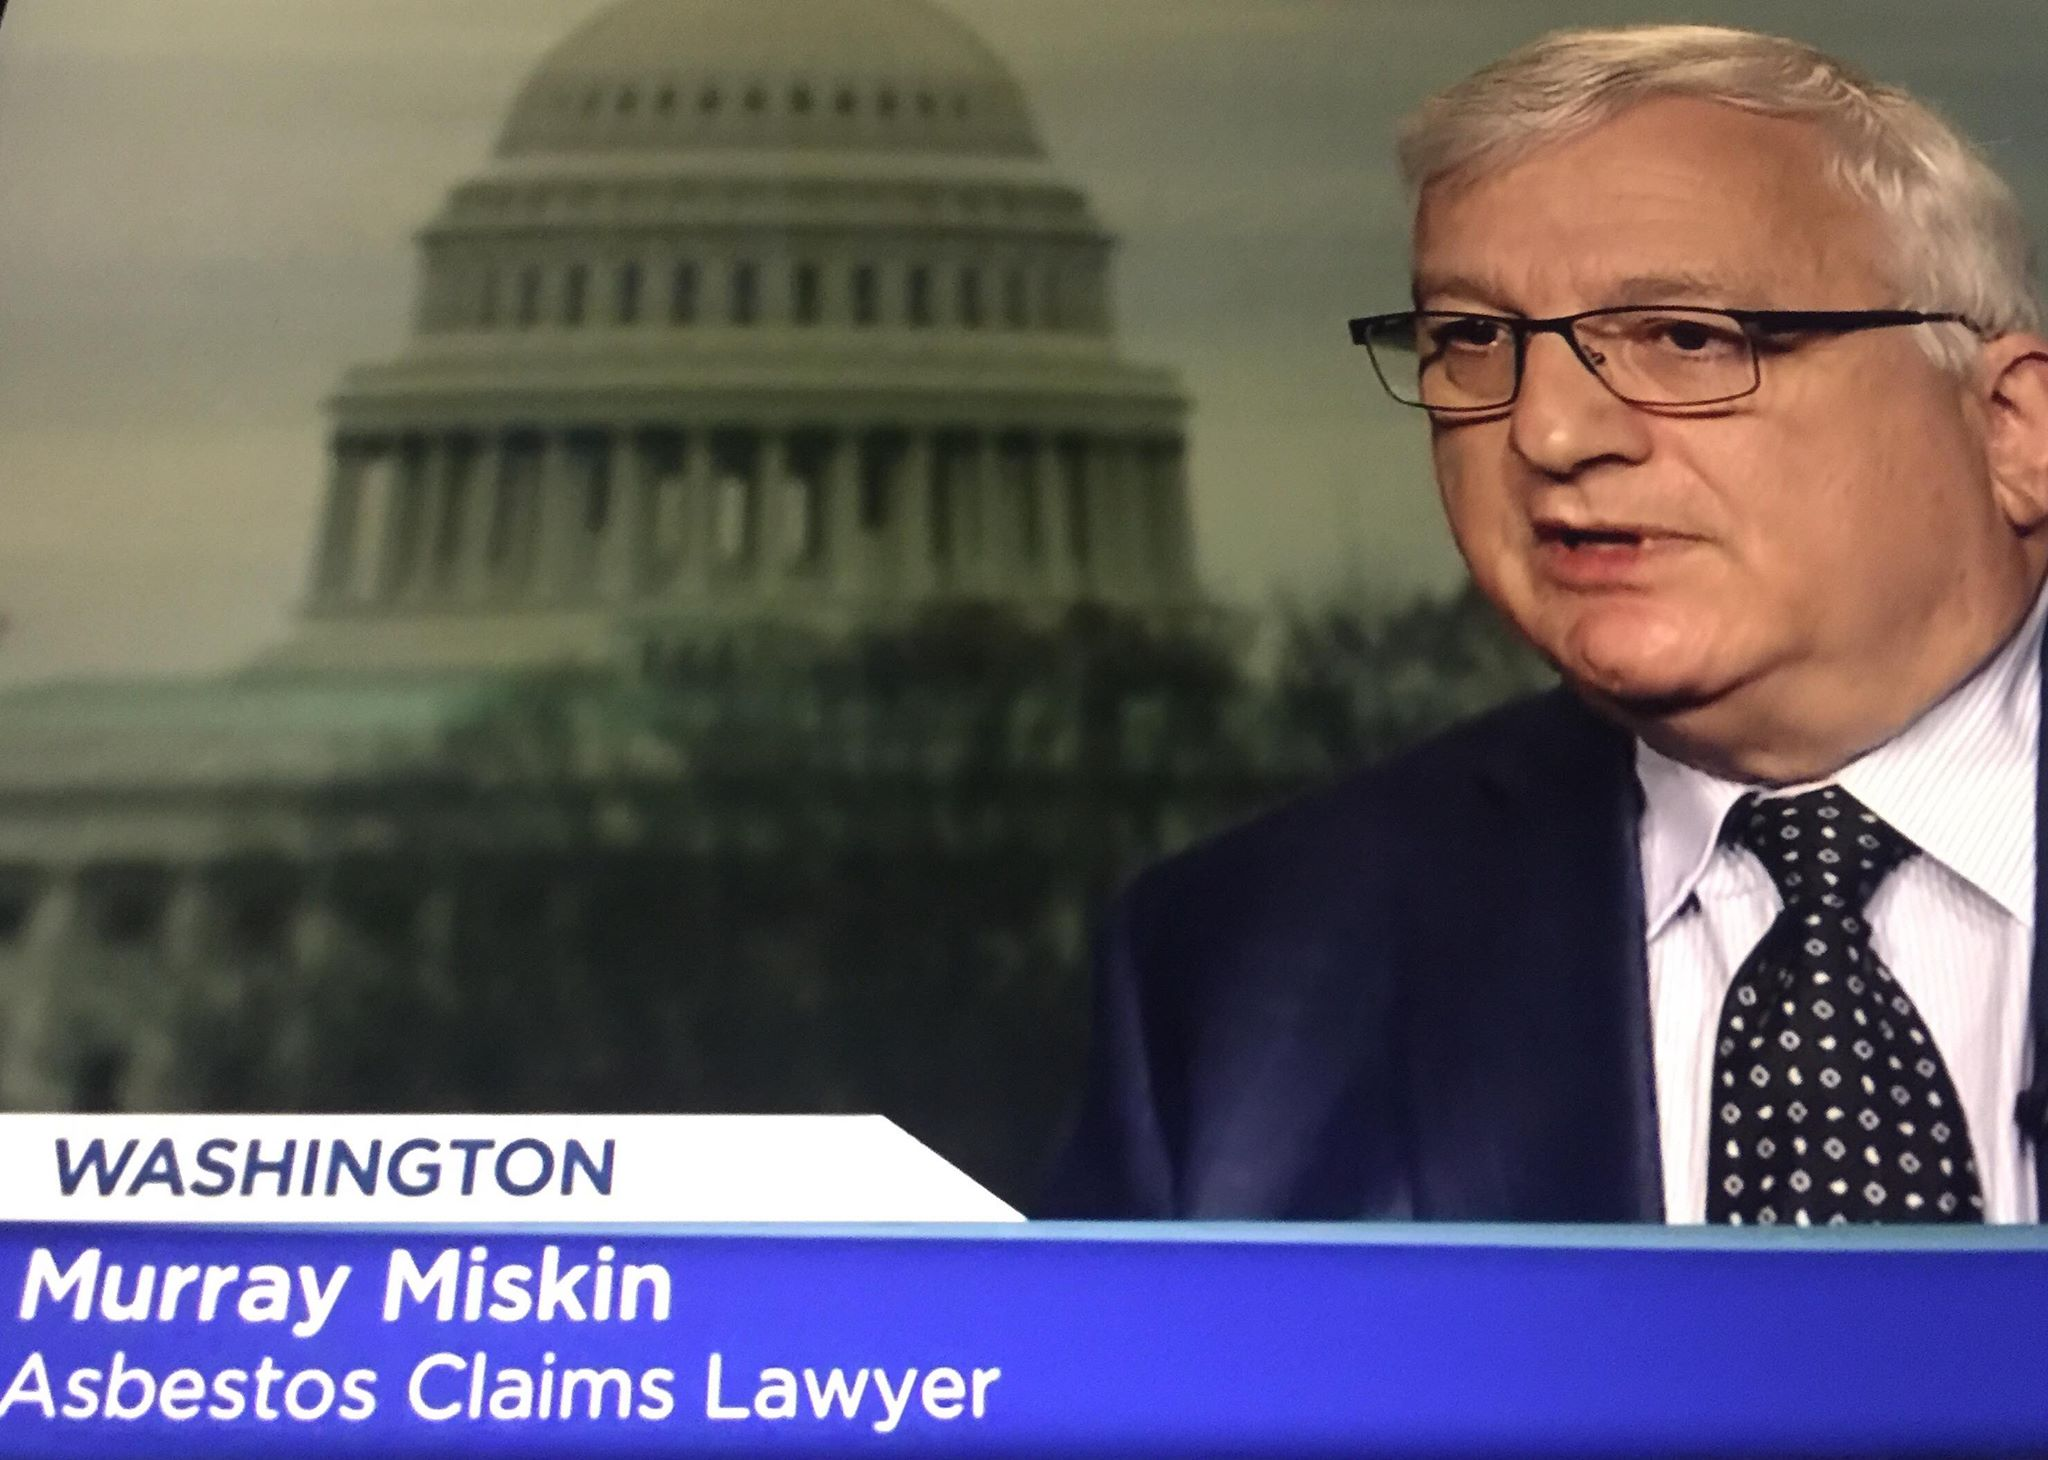 """- """"Our team has the skill, knowledge and experience to get you maximum compensation for your injuries. Dealing with an illness like mesothelioma can be devastating. Let us take the stress away. Compensation cannot give you your health back, but hopefully it can make things easier for you and your family.""""- Murray H Miskin"""